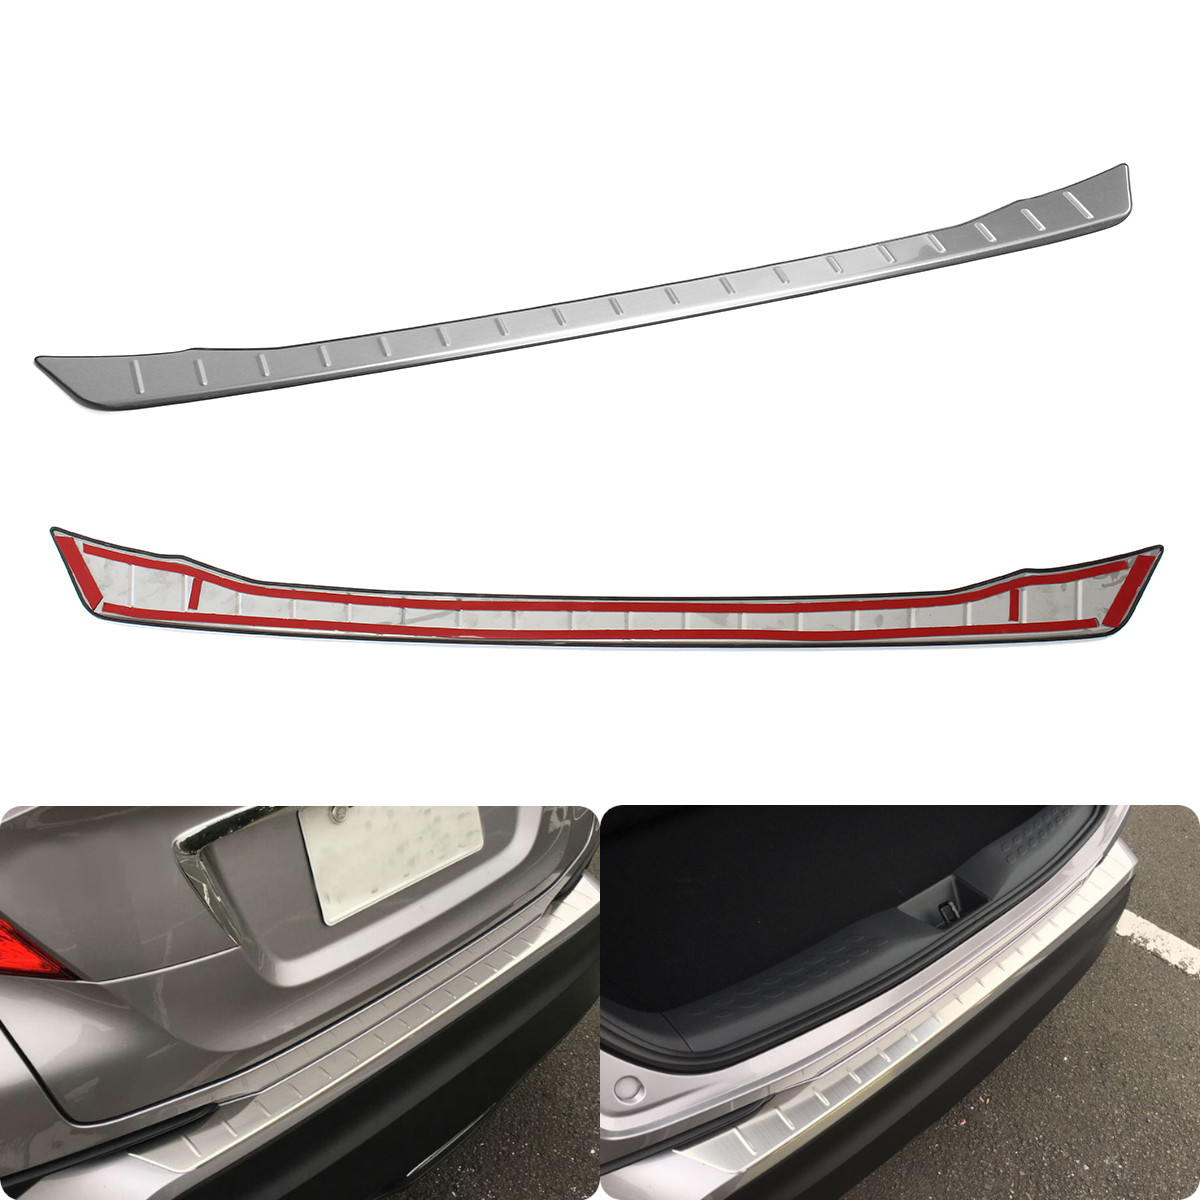 Stainless Steel Rear Trunk Pad Wheel Fender Backplate Protective Guard Plate Trim For Toyota CHR 2016 2017 <font><b>2018</b></font> image